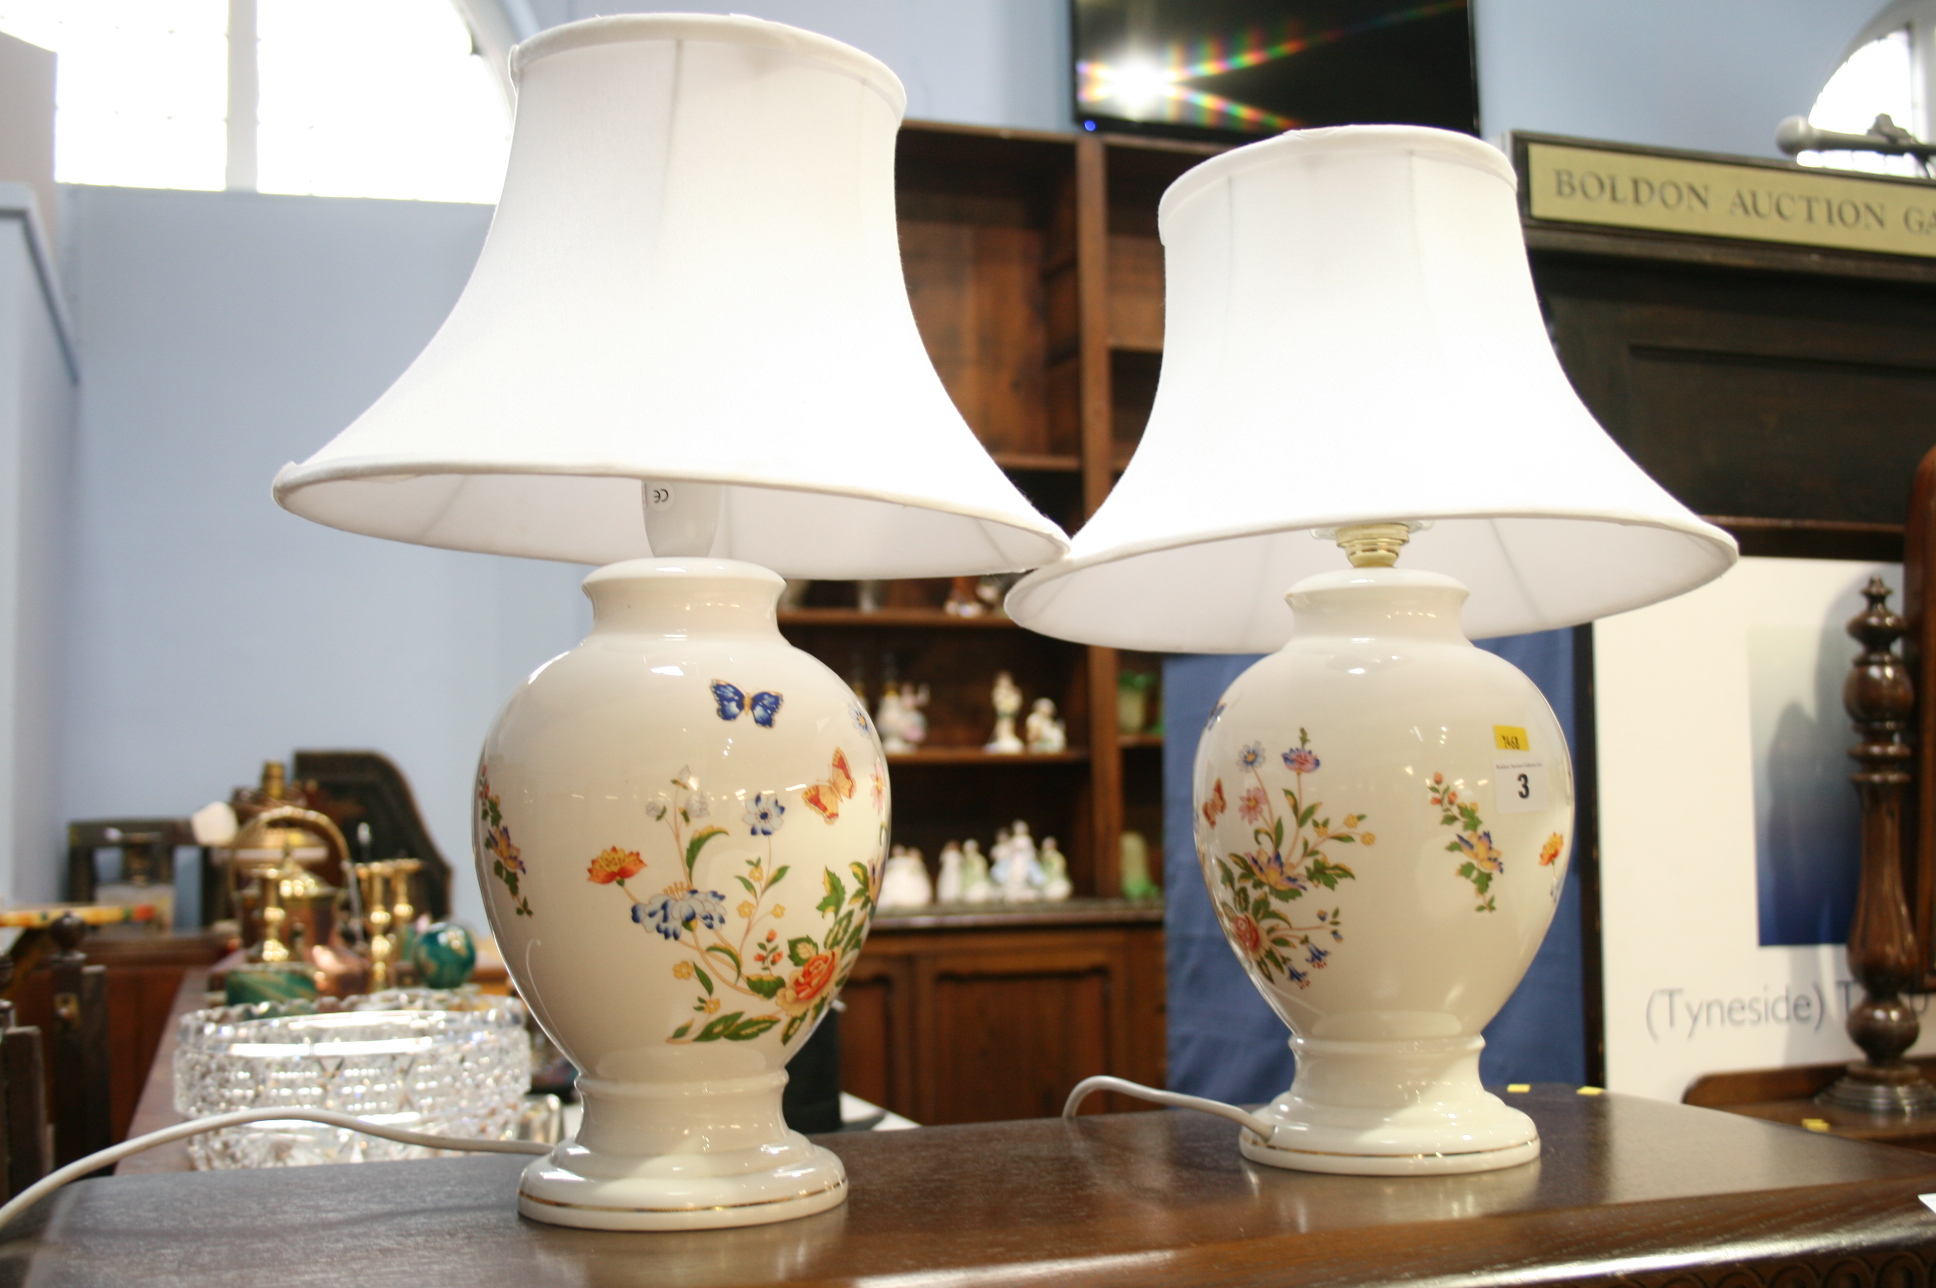 Lot 3 - Pair of Aynsley table lamps